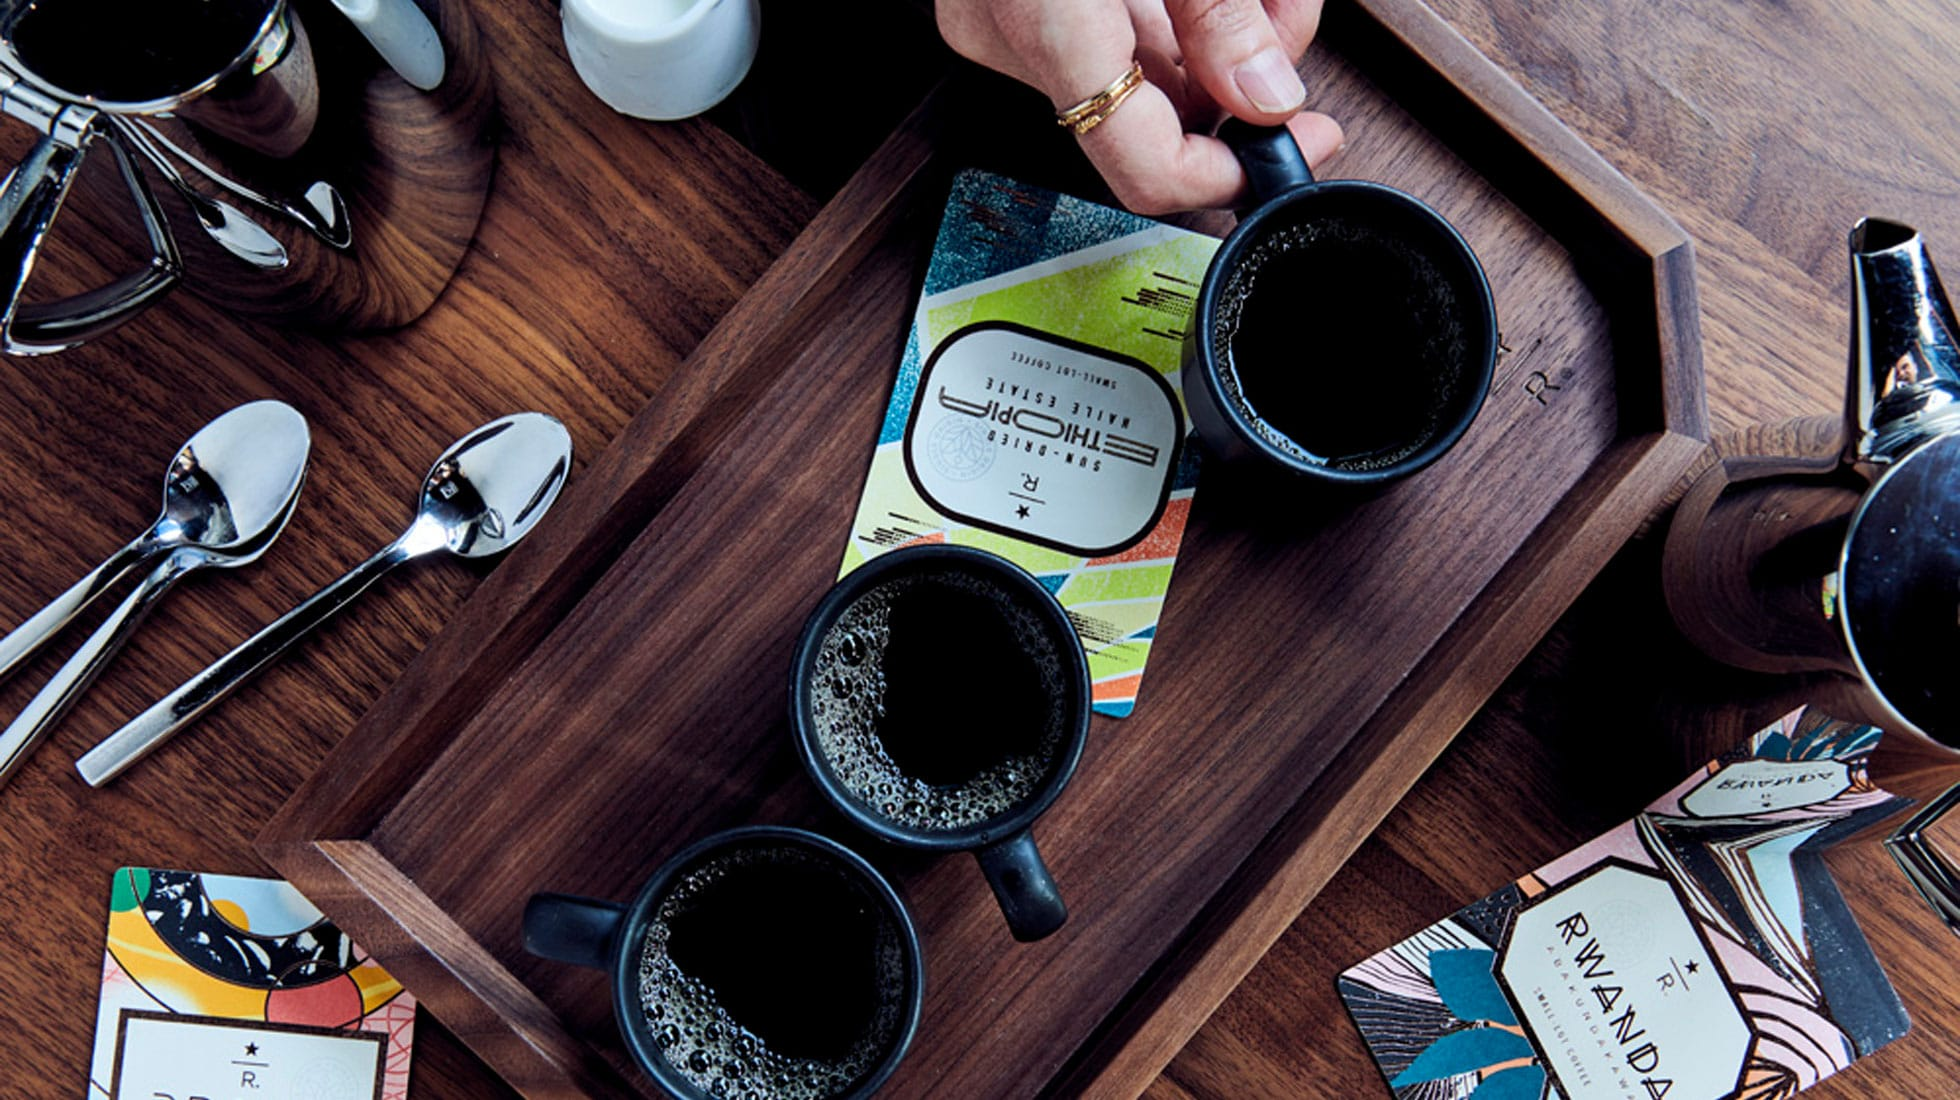 Overhead shot of multiple cups of coffee on a tray with coffee cards, as well as spoons and pots